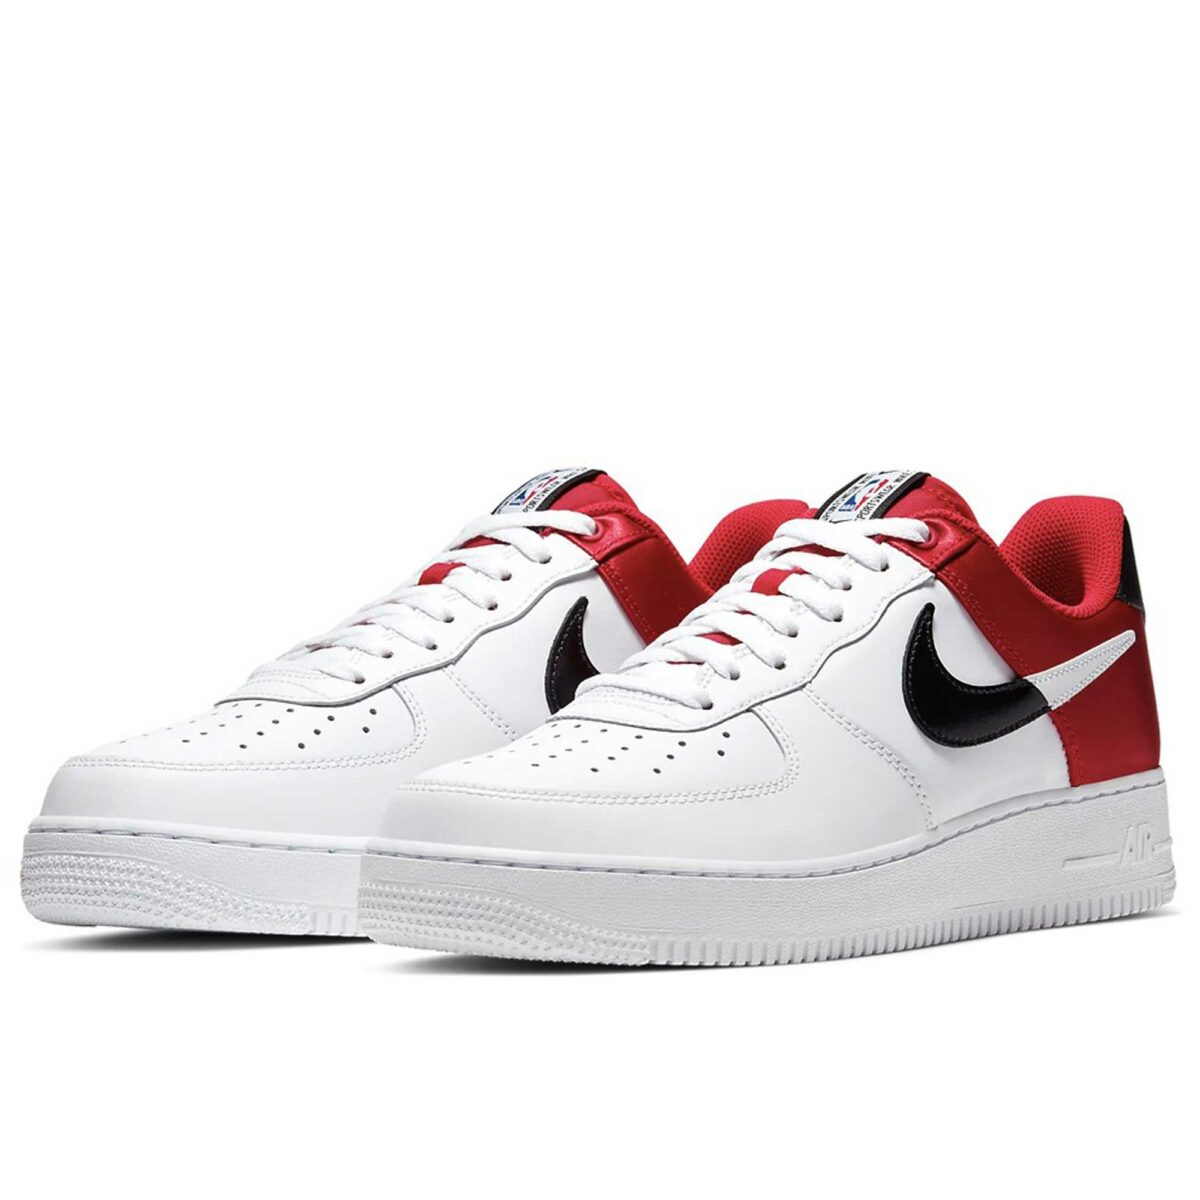 nike air force 1 '07 LV8 NBA white black red купить